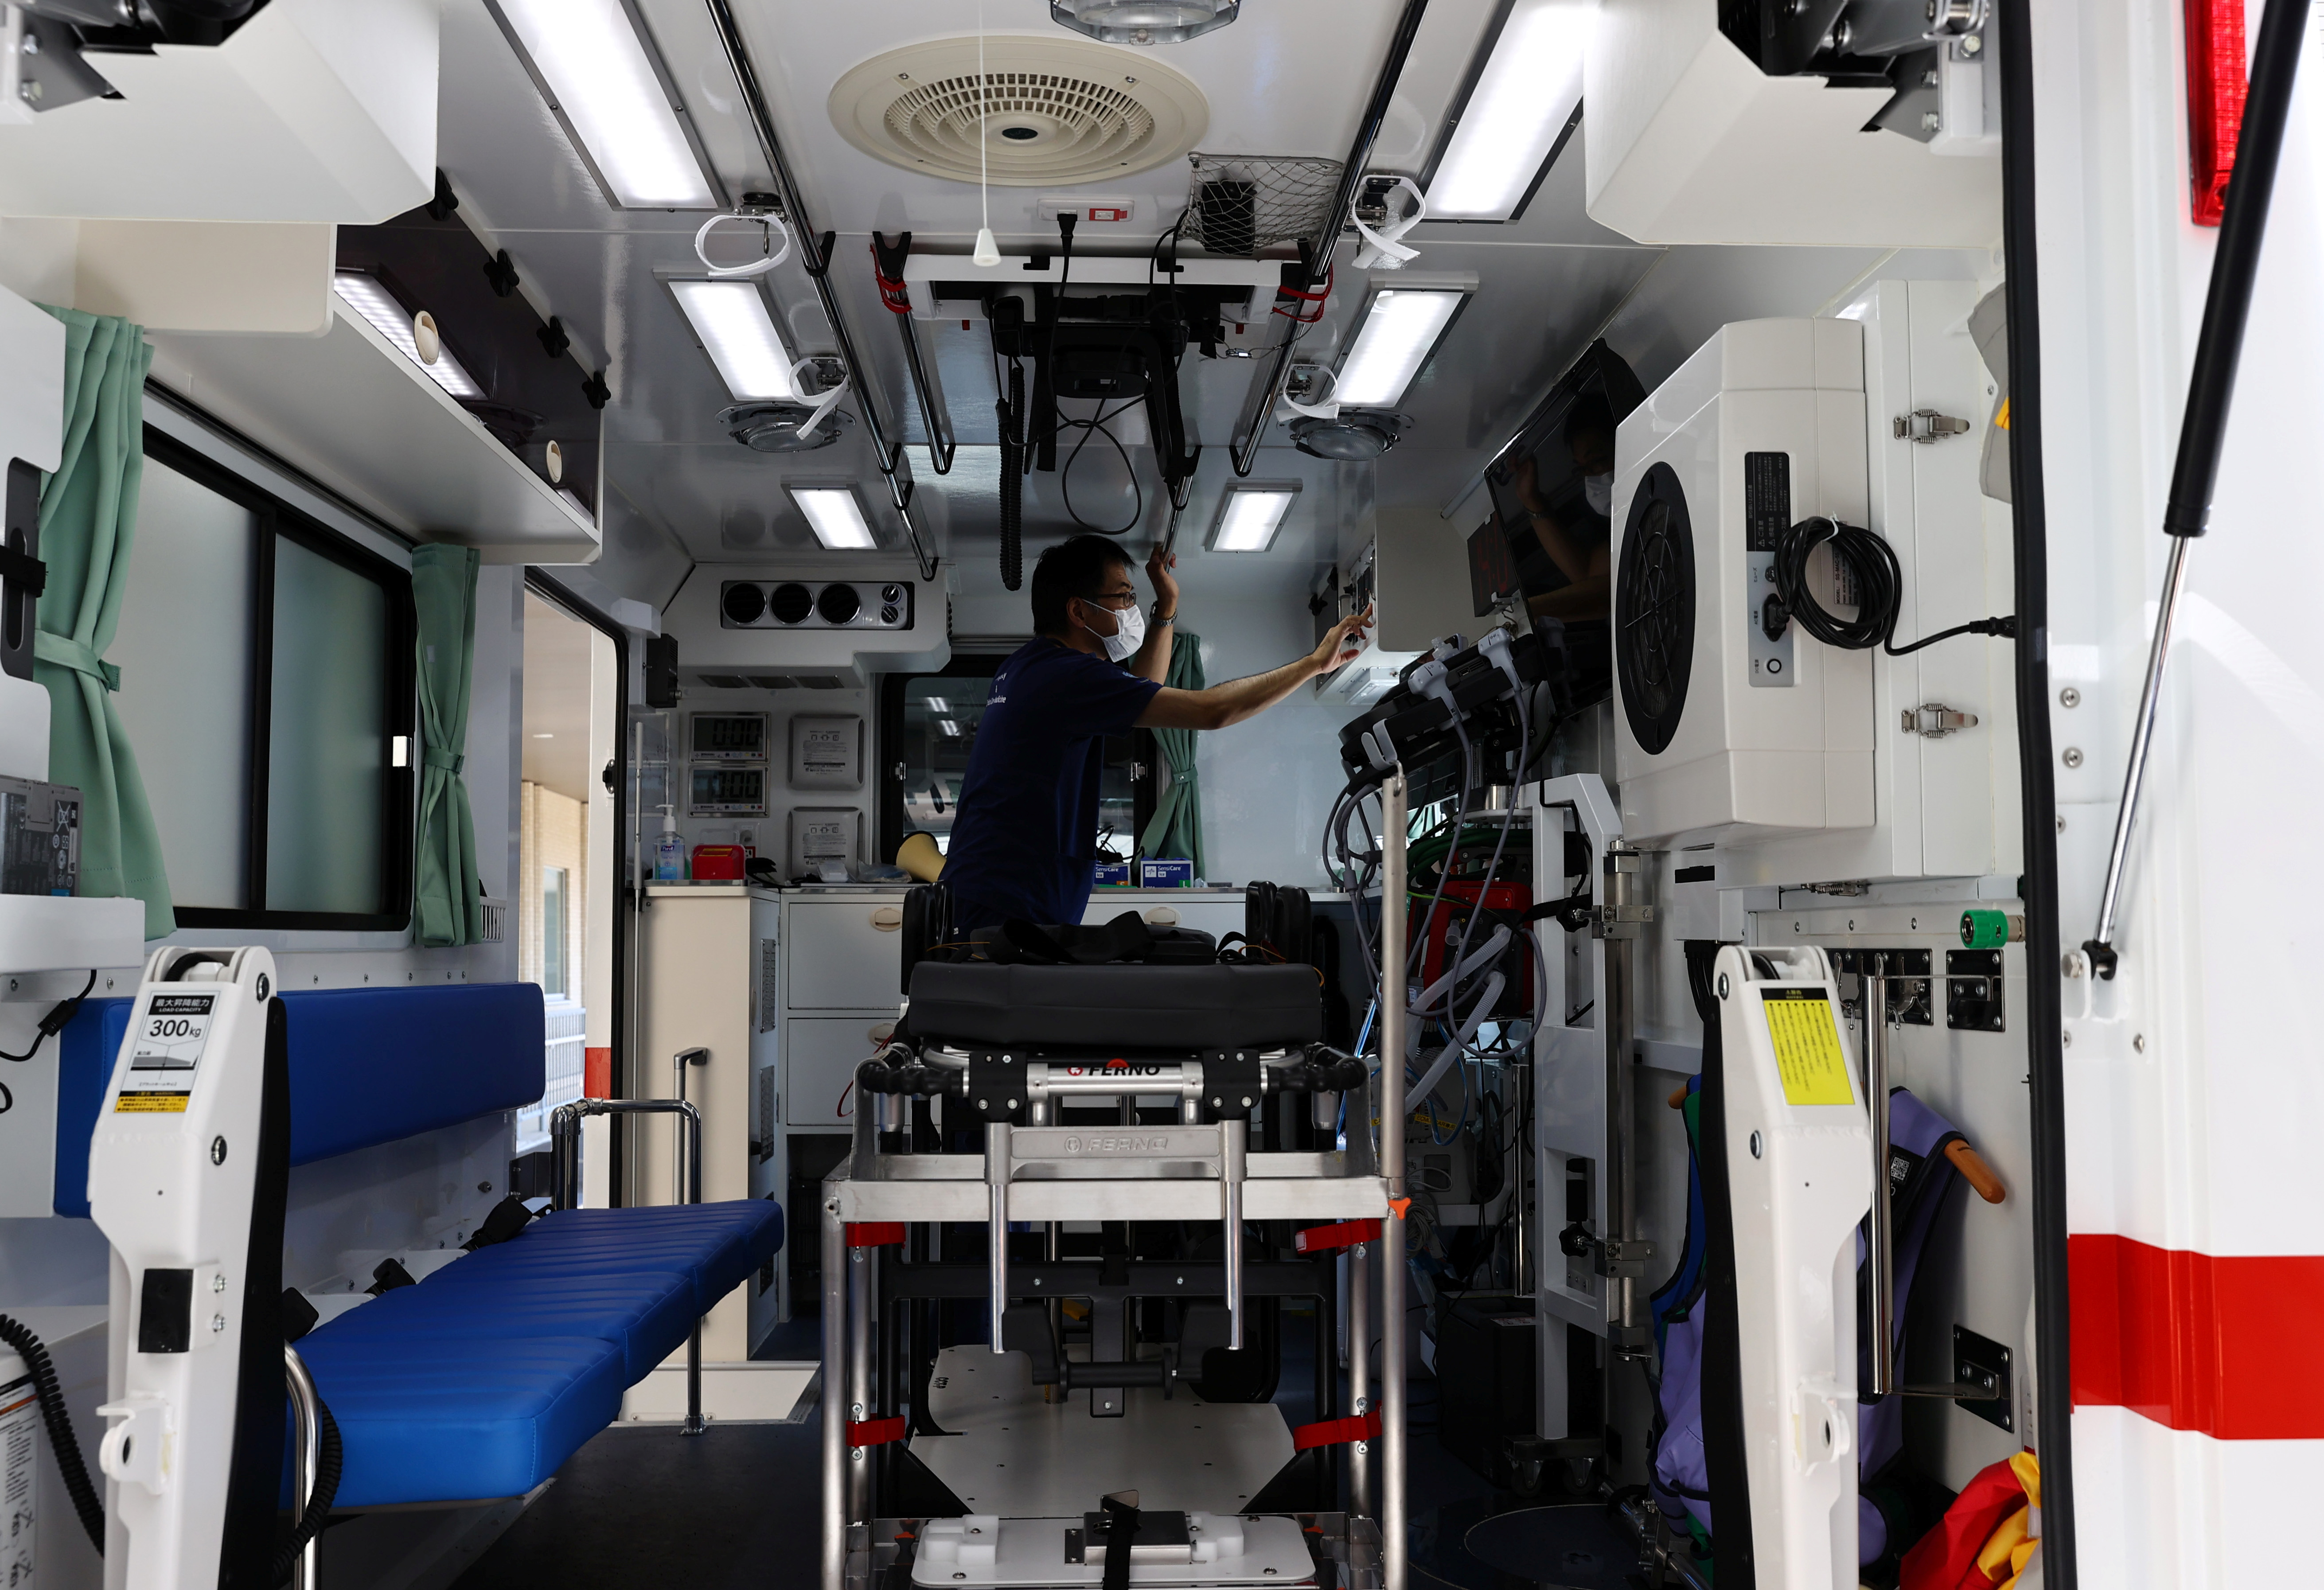 Nippon Medical School Hospital's ICU doctor Shoji Yokobori checks the devices of an ambulance, to prevent the spread of COVID-19 at the hospital in Tokyo, Japan, August 1, 2021. Picture taken on August 1, 2021.  REUTERS/Kim Kyung-Hoon/Files